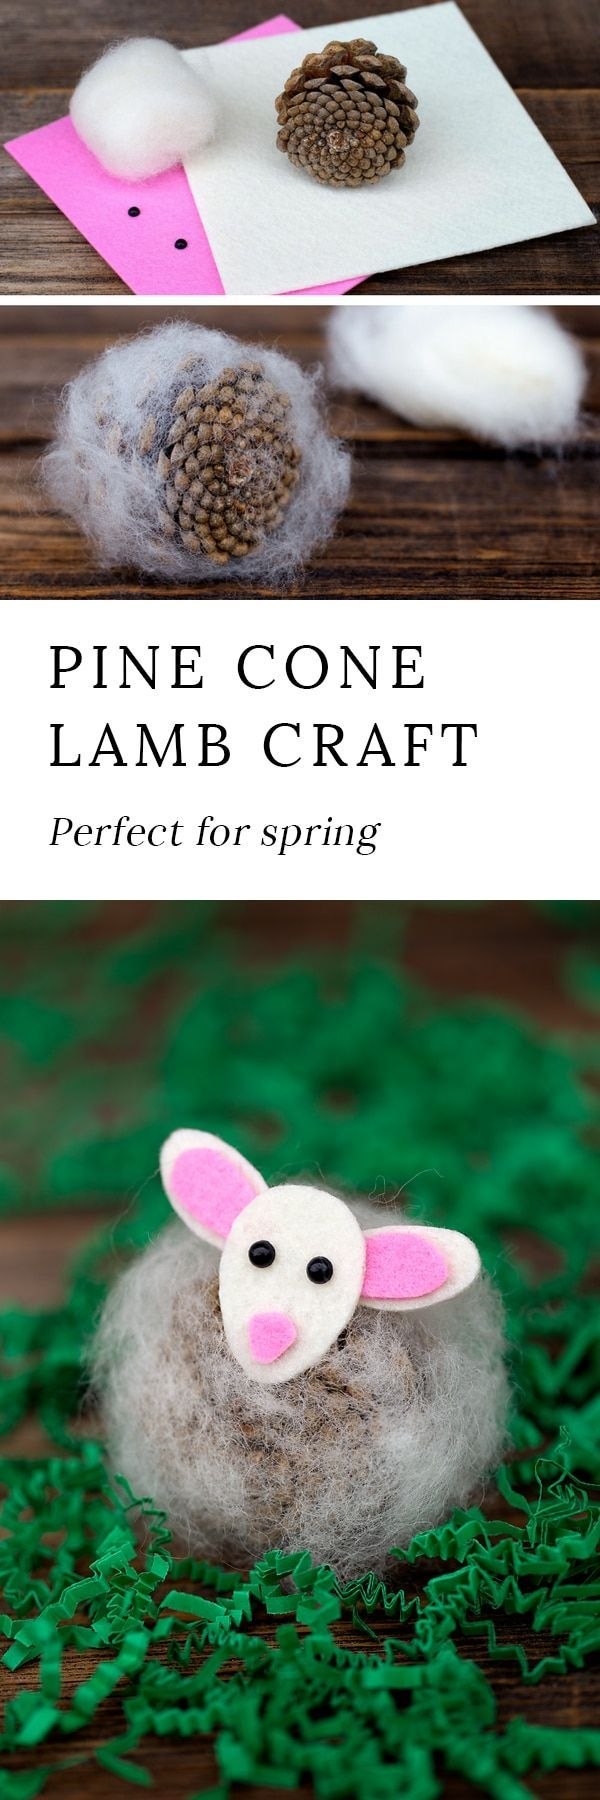 Pine Cone Lambs are a creative, easy, and fun spring nature craft for kids. Made with pine cones, wool, and kid-friendly craft supplies! #pineconecrafts #lambcraftsforkids #springcraftsforkids #springnaturecrafts via @https://www.pinterest.com/fireflymudpie/